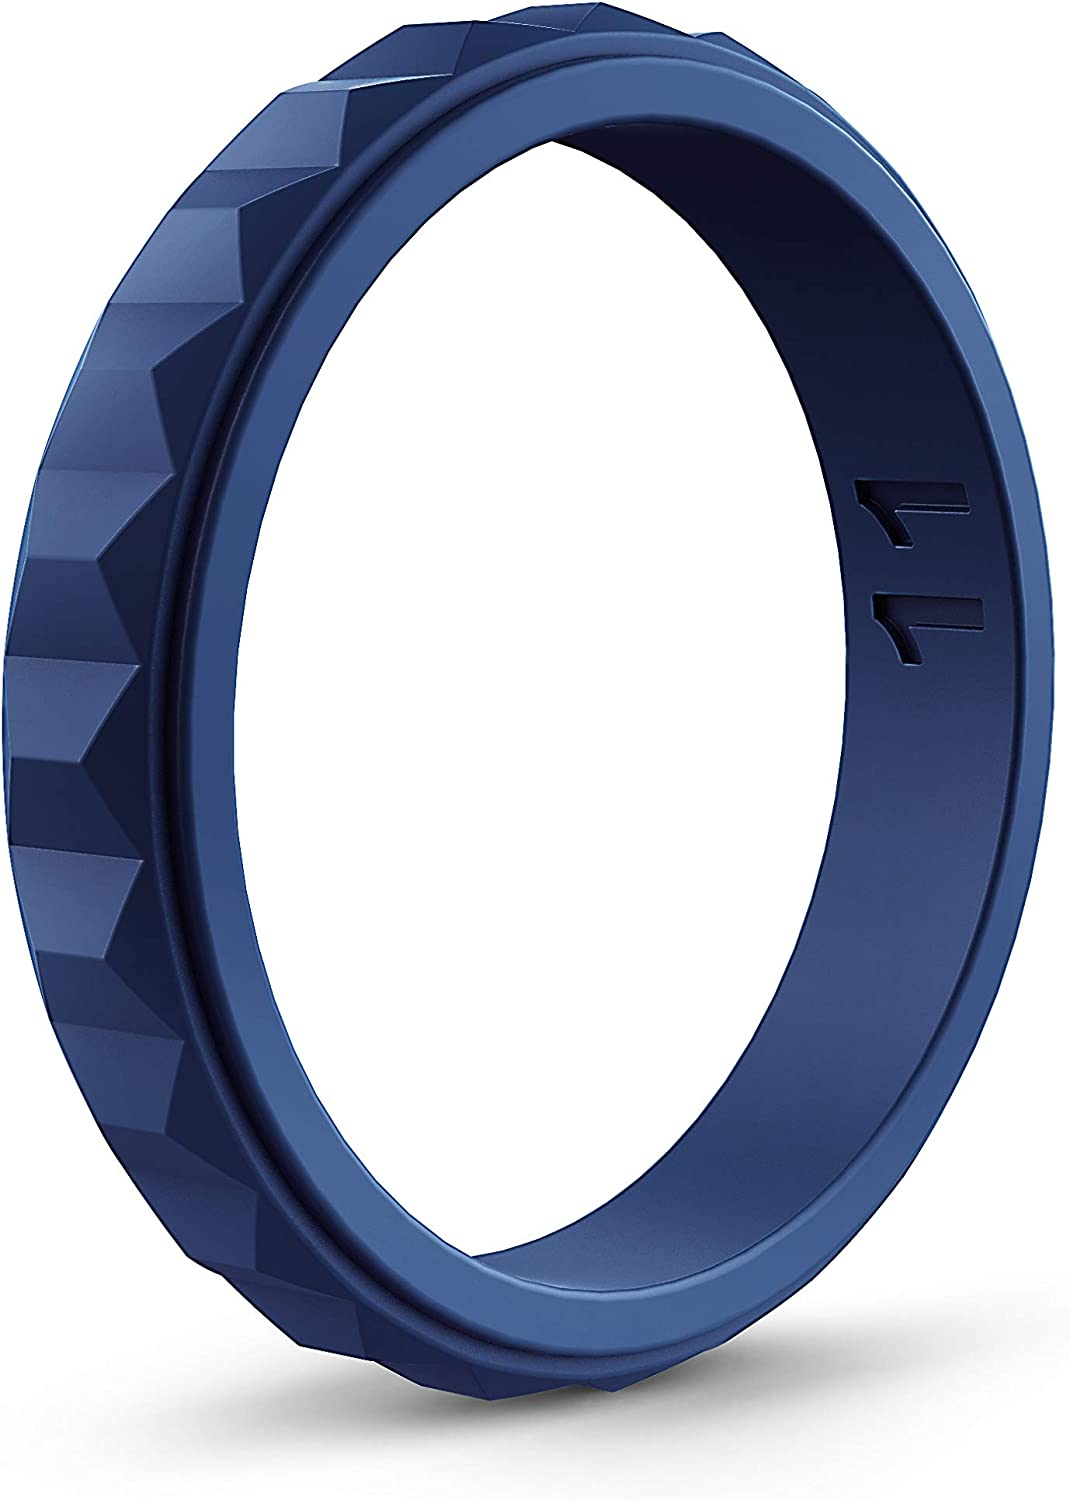 10 Colors//7 Size ASTERY Unique Designed Stackable Silicone Wedding Ring Bands for Women,Hypoallergenic Medical Grade Silicone,Lifetime Quality Guarantee